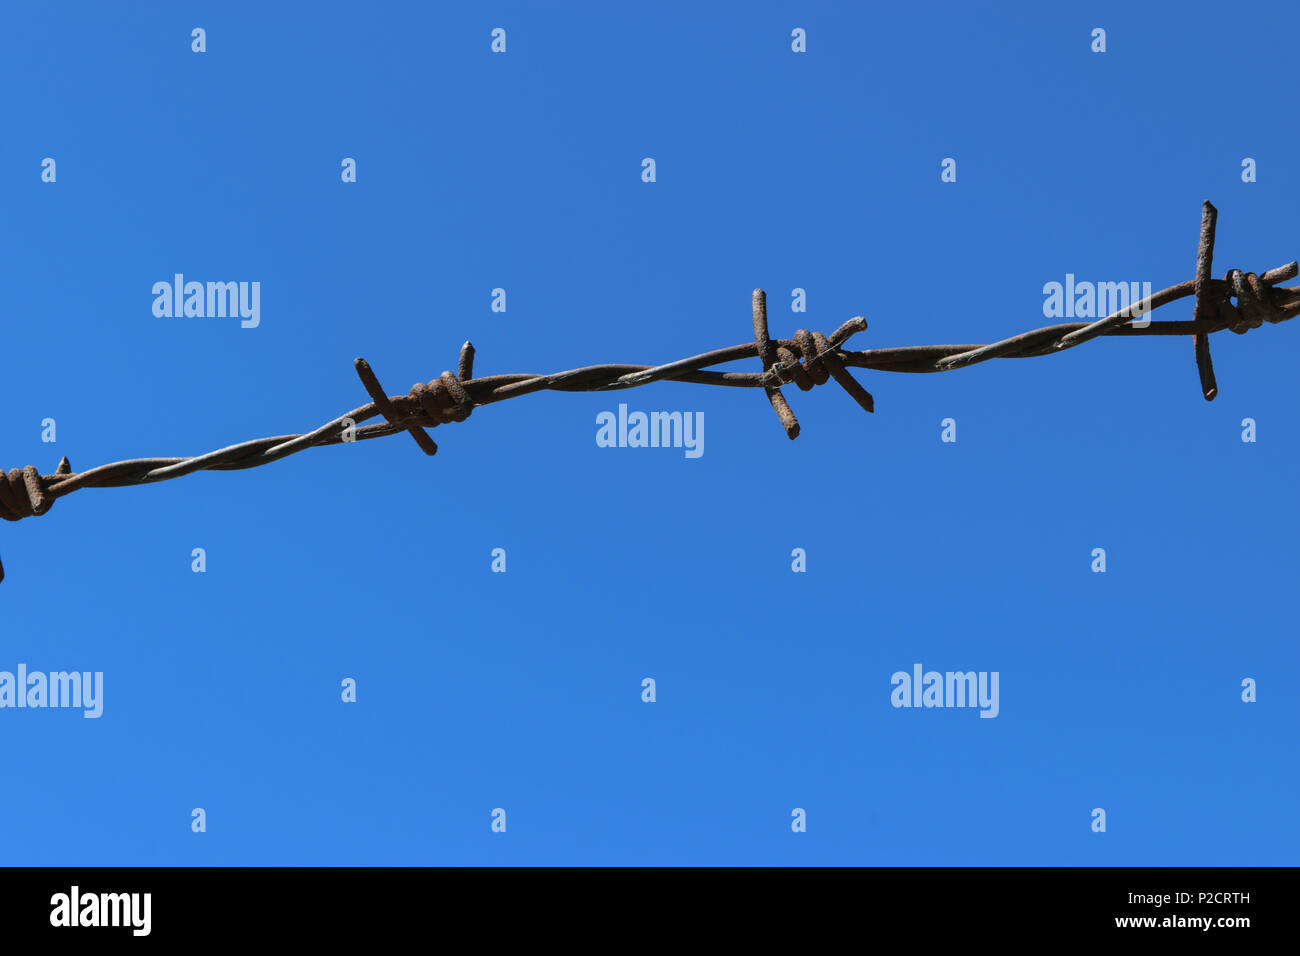 Rusty barbed wire fence in clear blue sky background - Stock Image